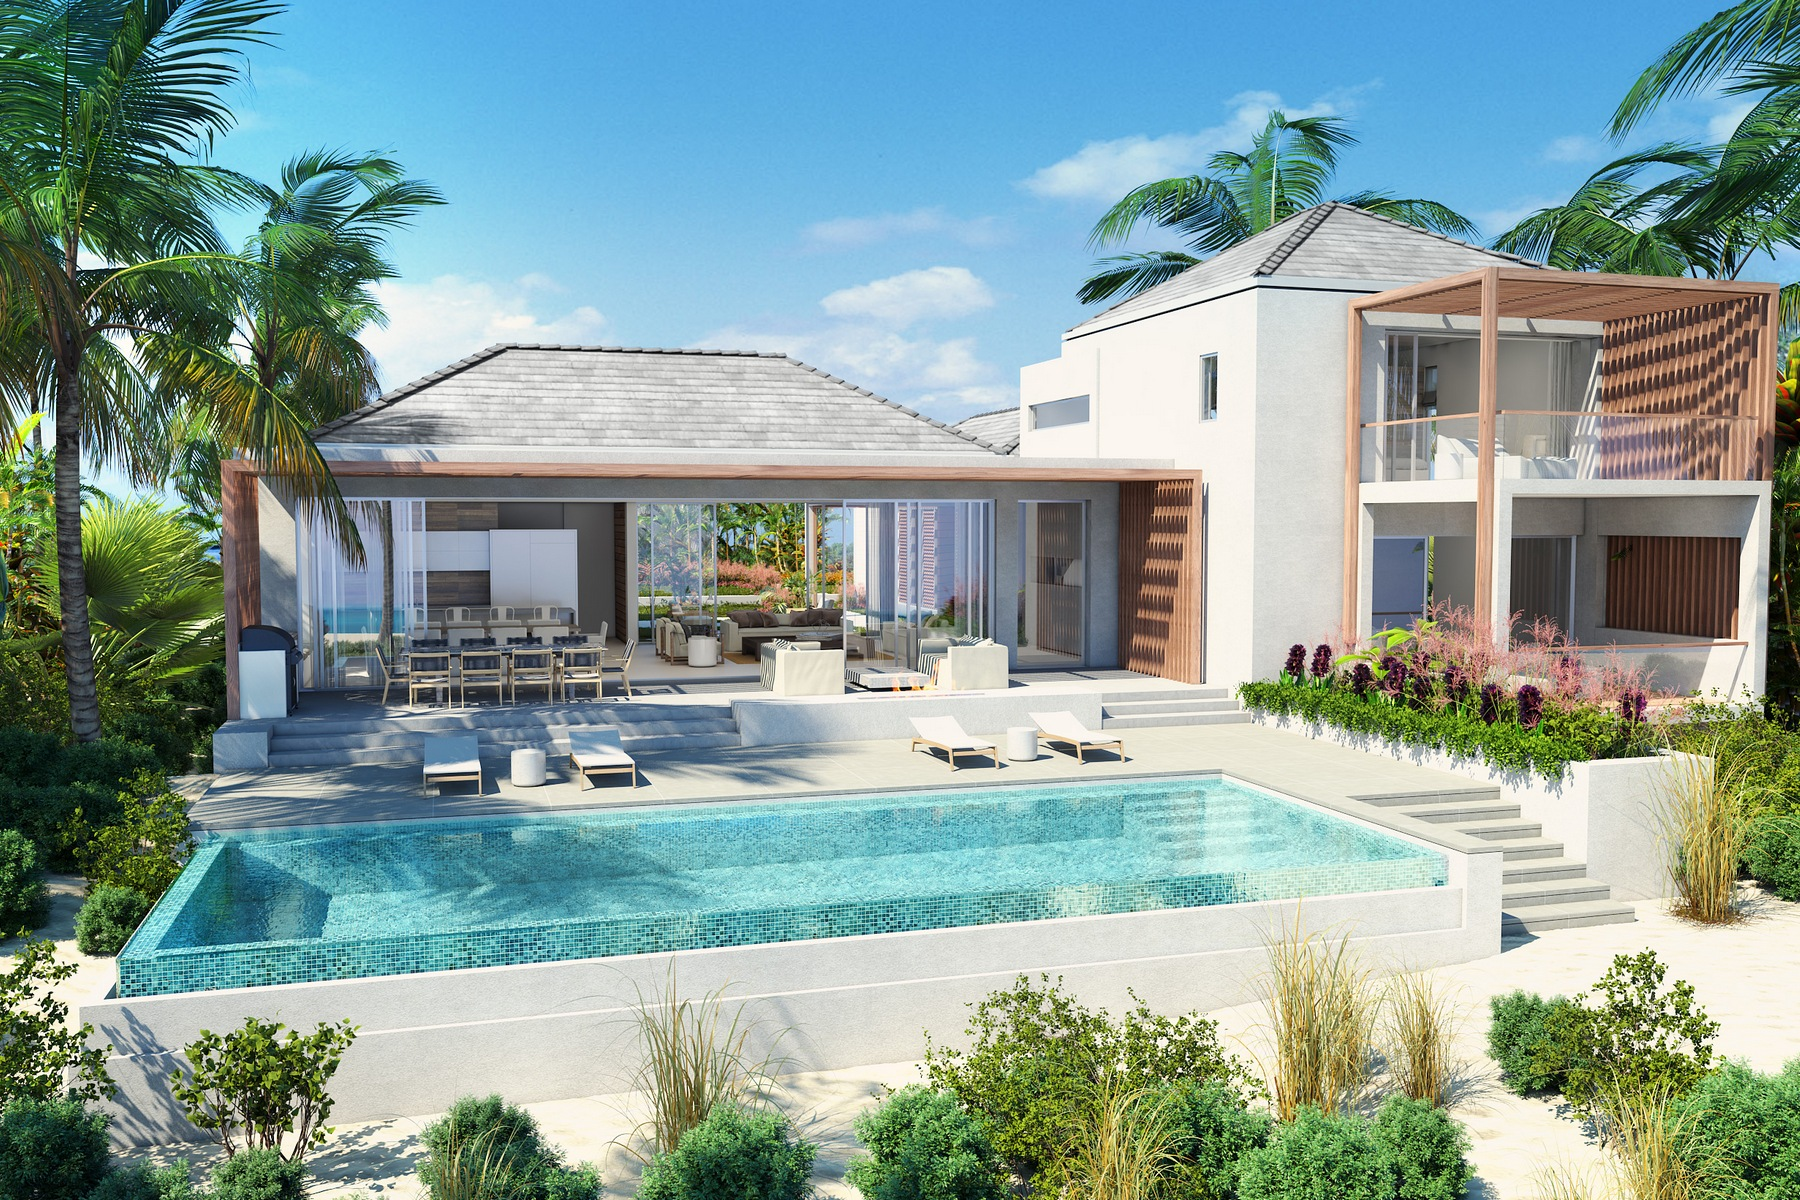 Single Family Home for Sale at BEACH ENCLAVE LONG BAY - Design One 4B Beachfront Long Bay, Providenciales TCI Turks And Caicos Islands